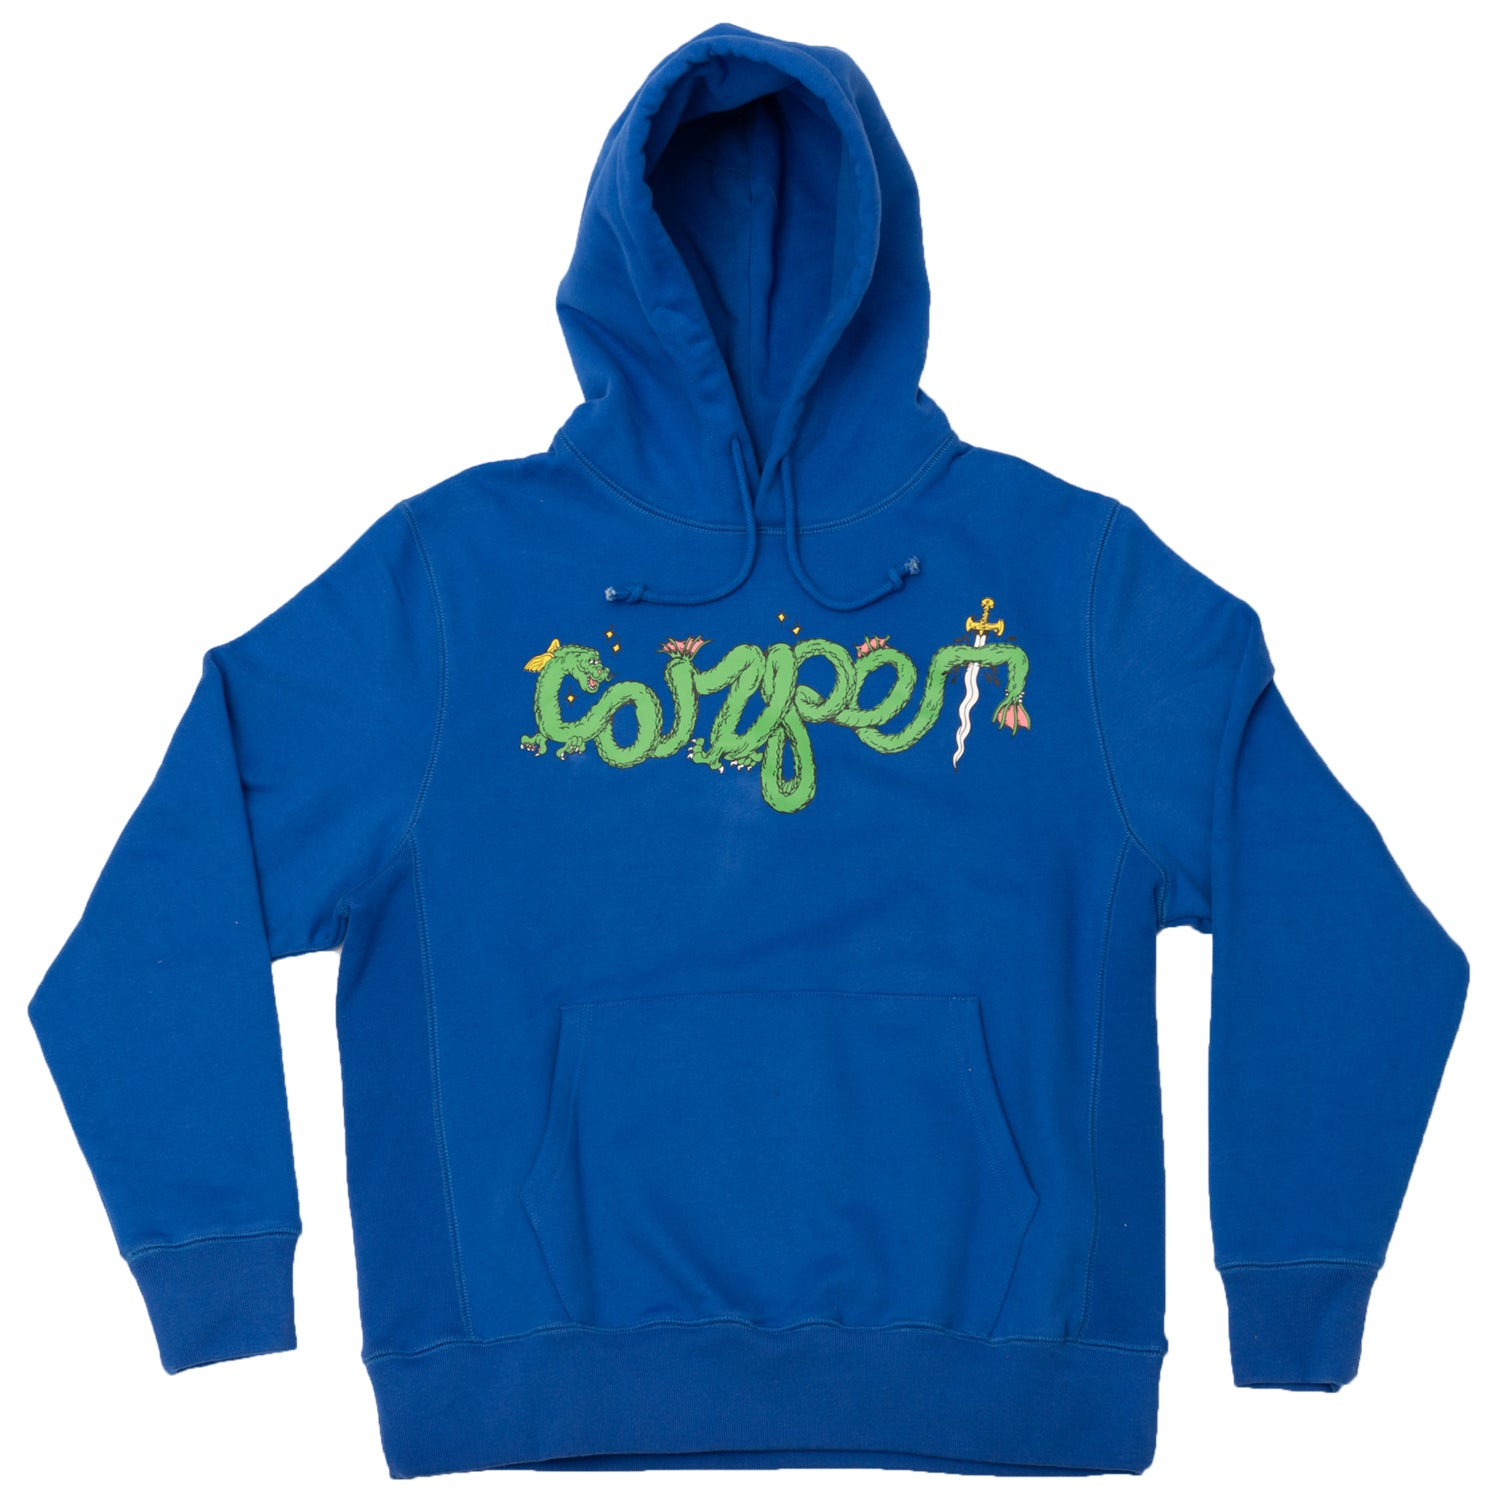 Carpet Company Dragon Hoodie Royal